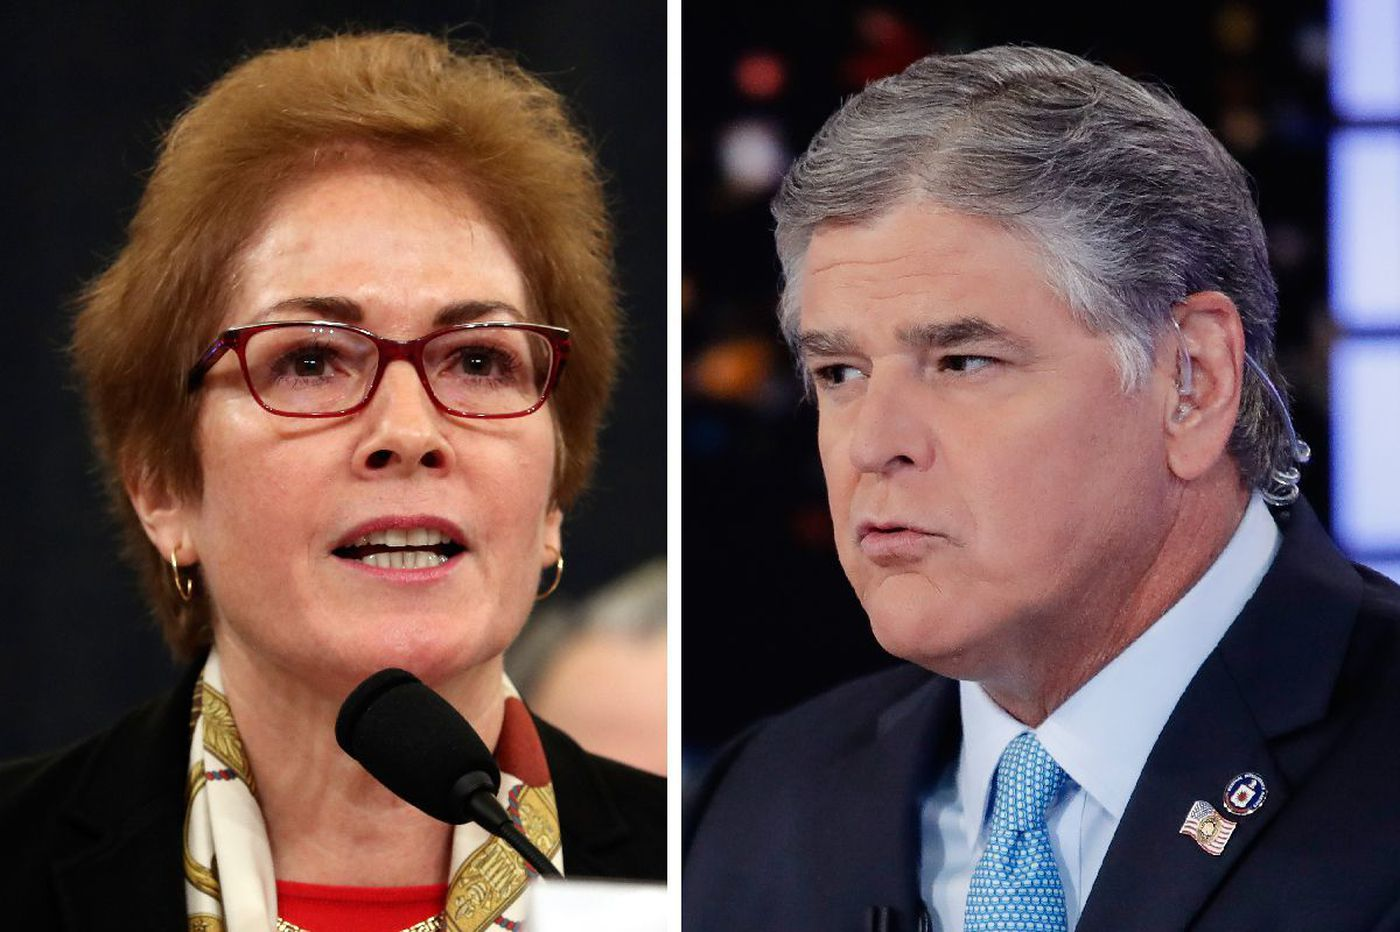 Marie Yovanovitch denies right-wing smear campaign pushed by Fox News host Sean Hannity and others